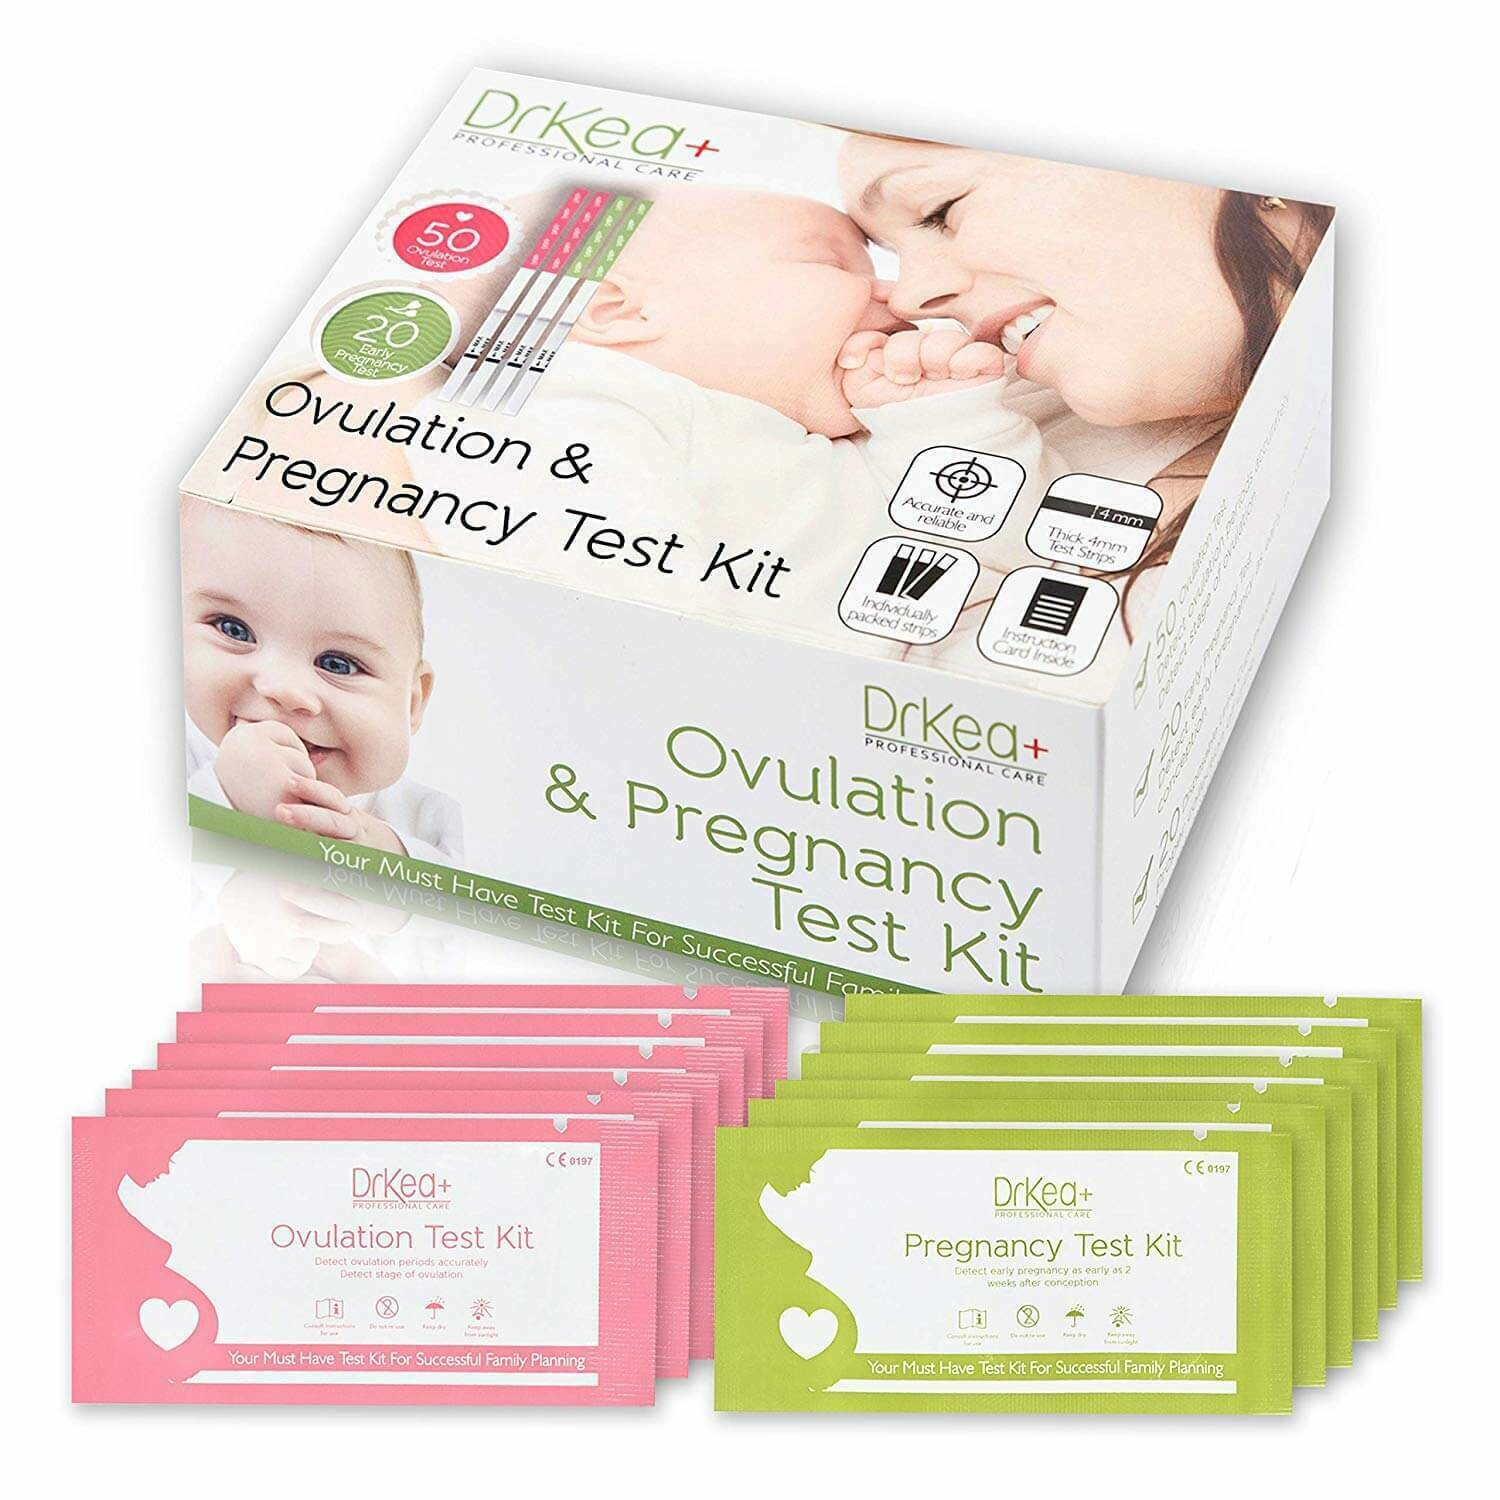 Ovulation & Pregnancy Test Kit